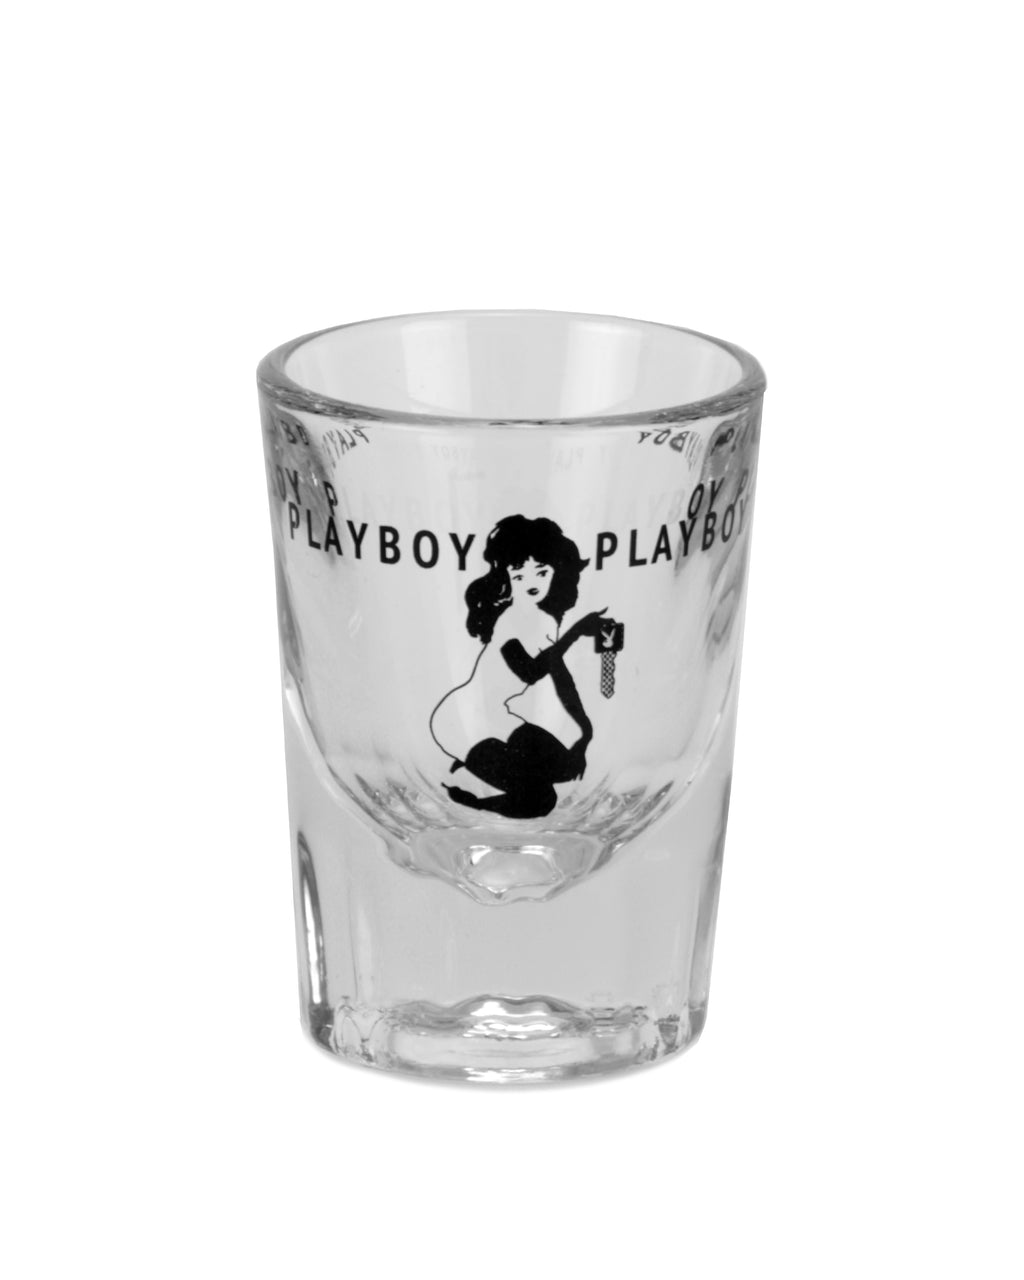 Playboy Club Replica Shot Glass